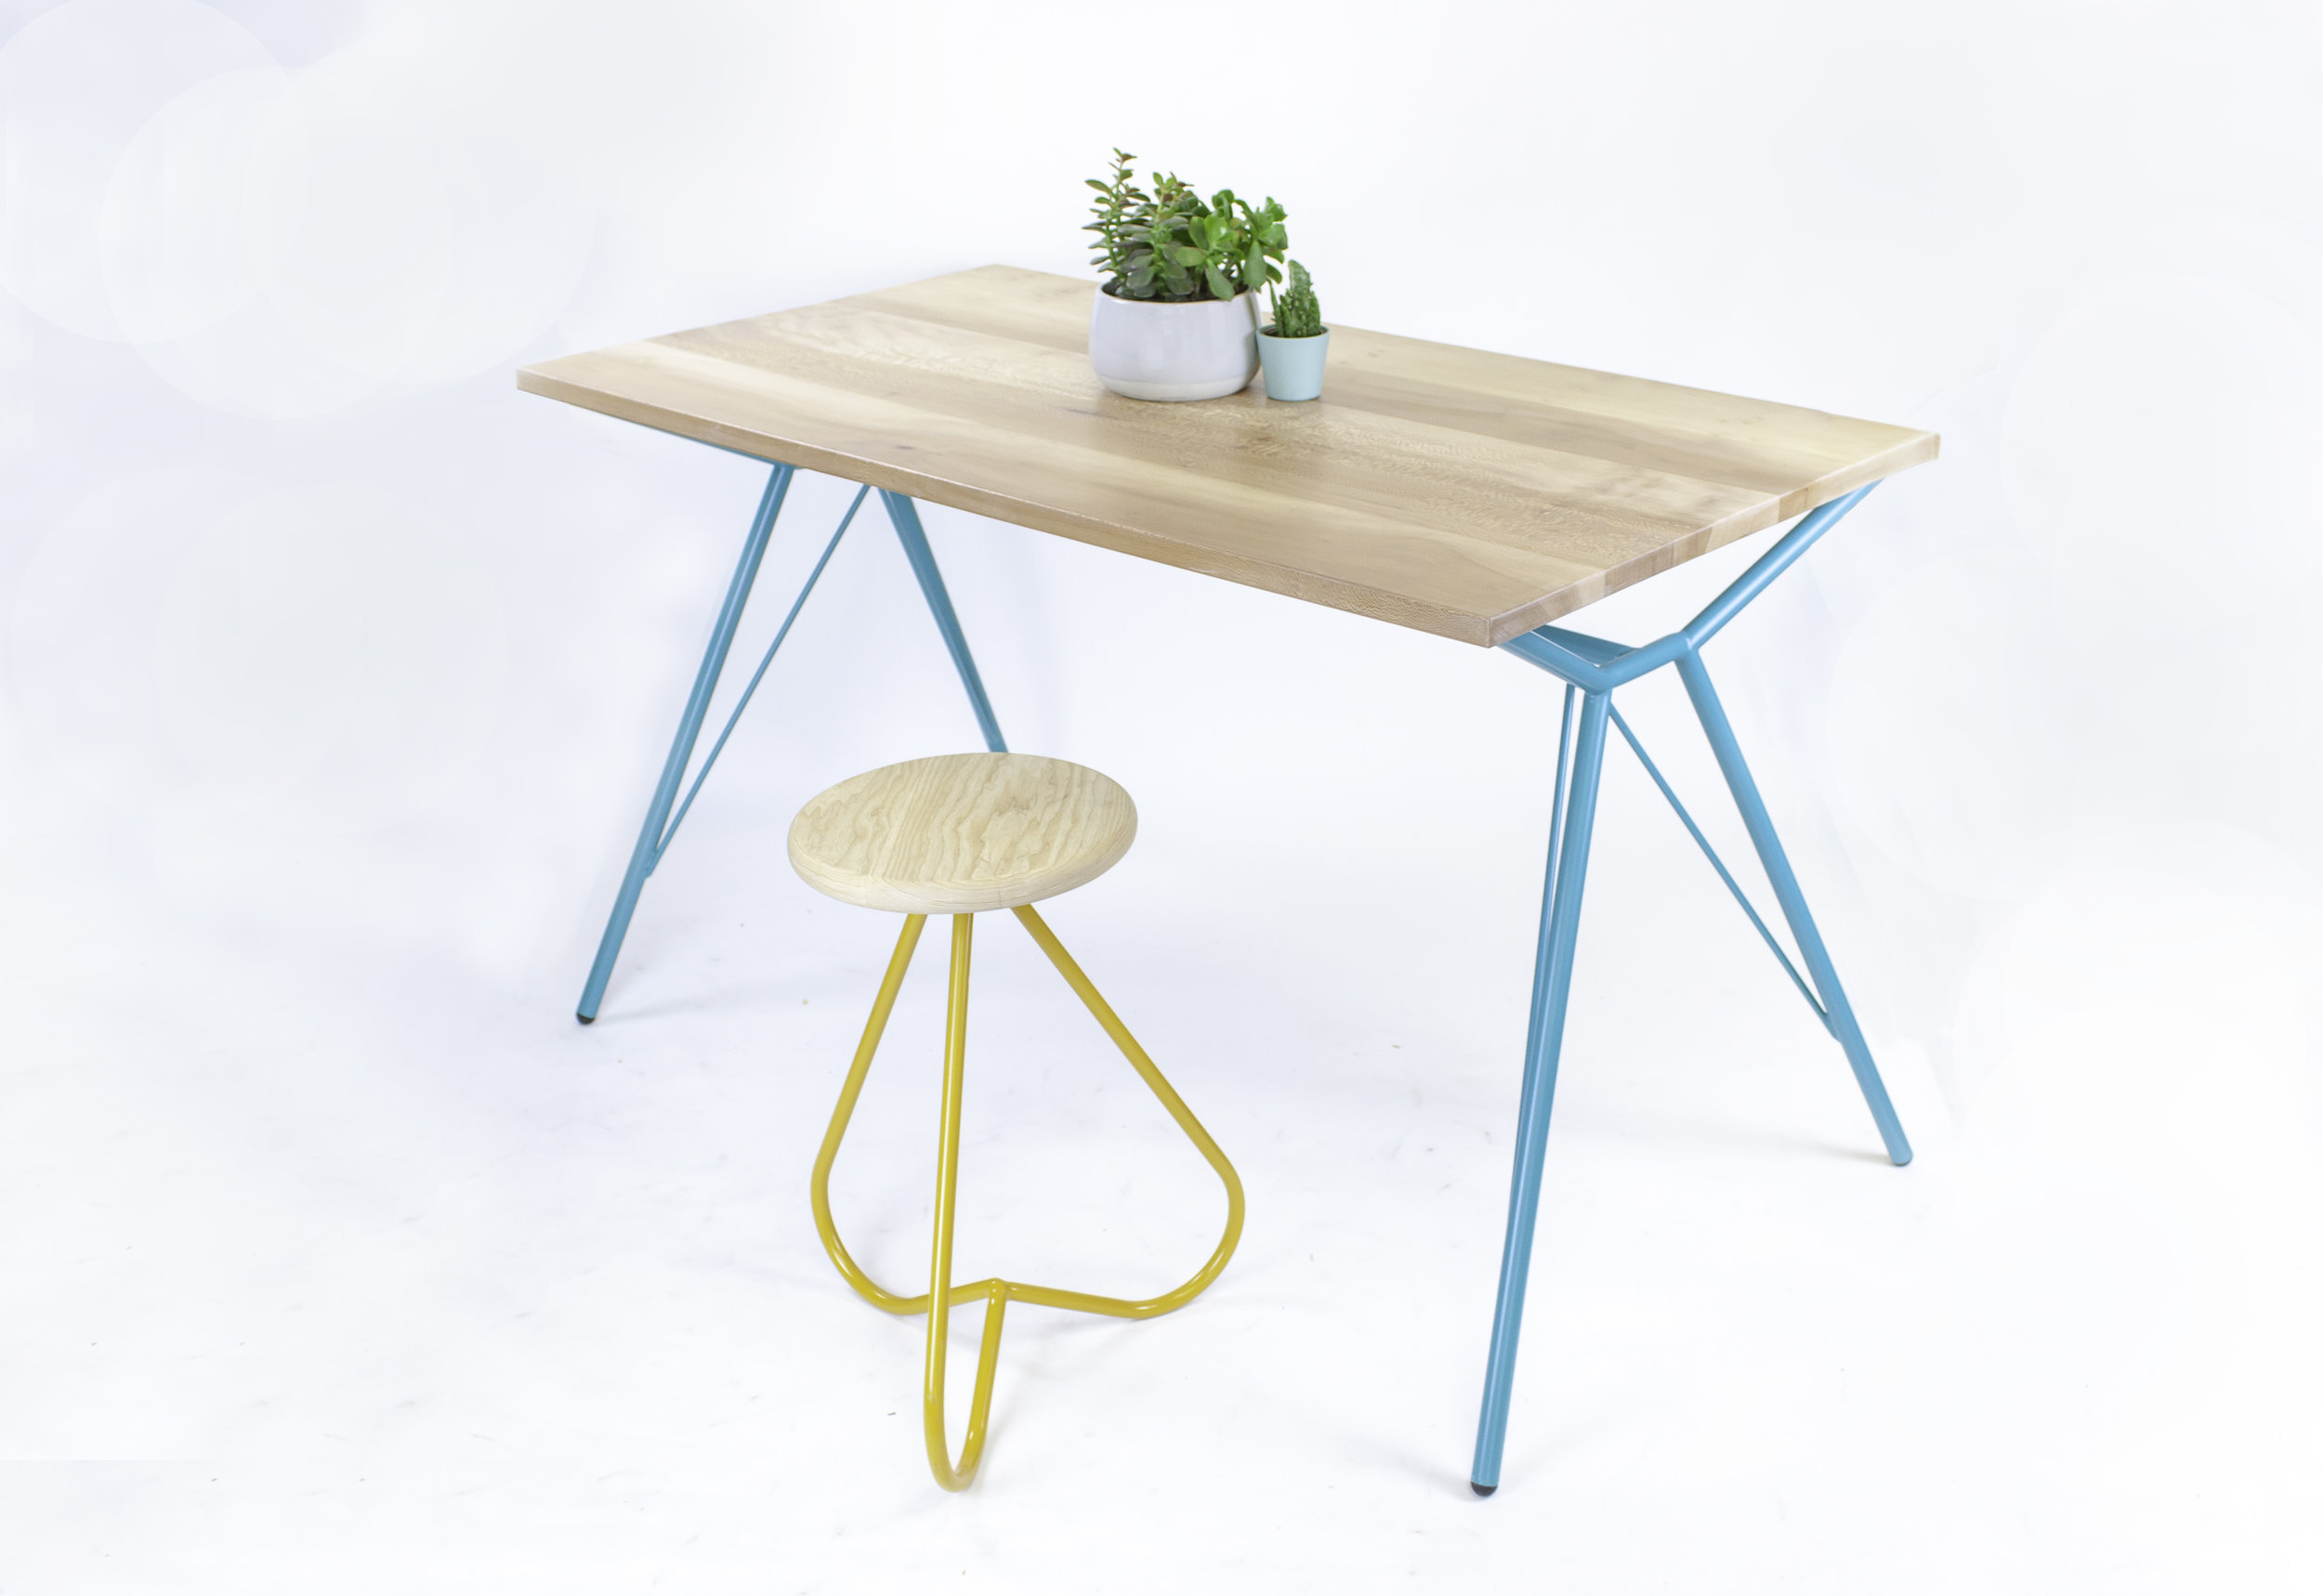 Yarmouth Crescent | Dinning Table | Designed in collaboration with Architect Alex Hill | Steel Tube and London Plane, Stool by RichCraft